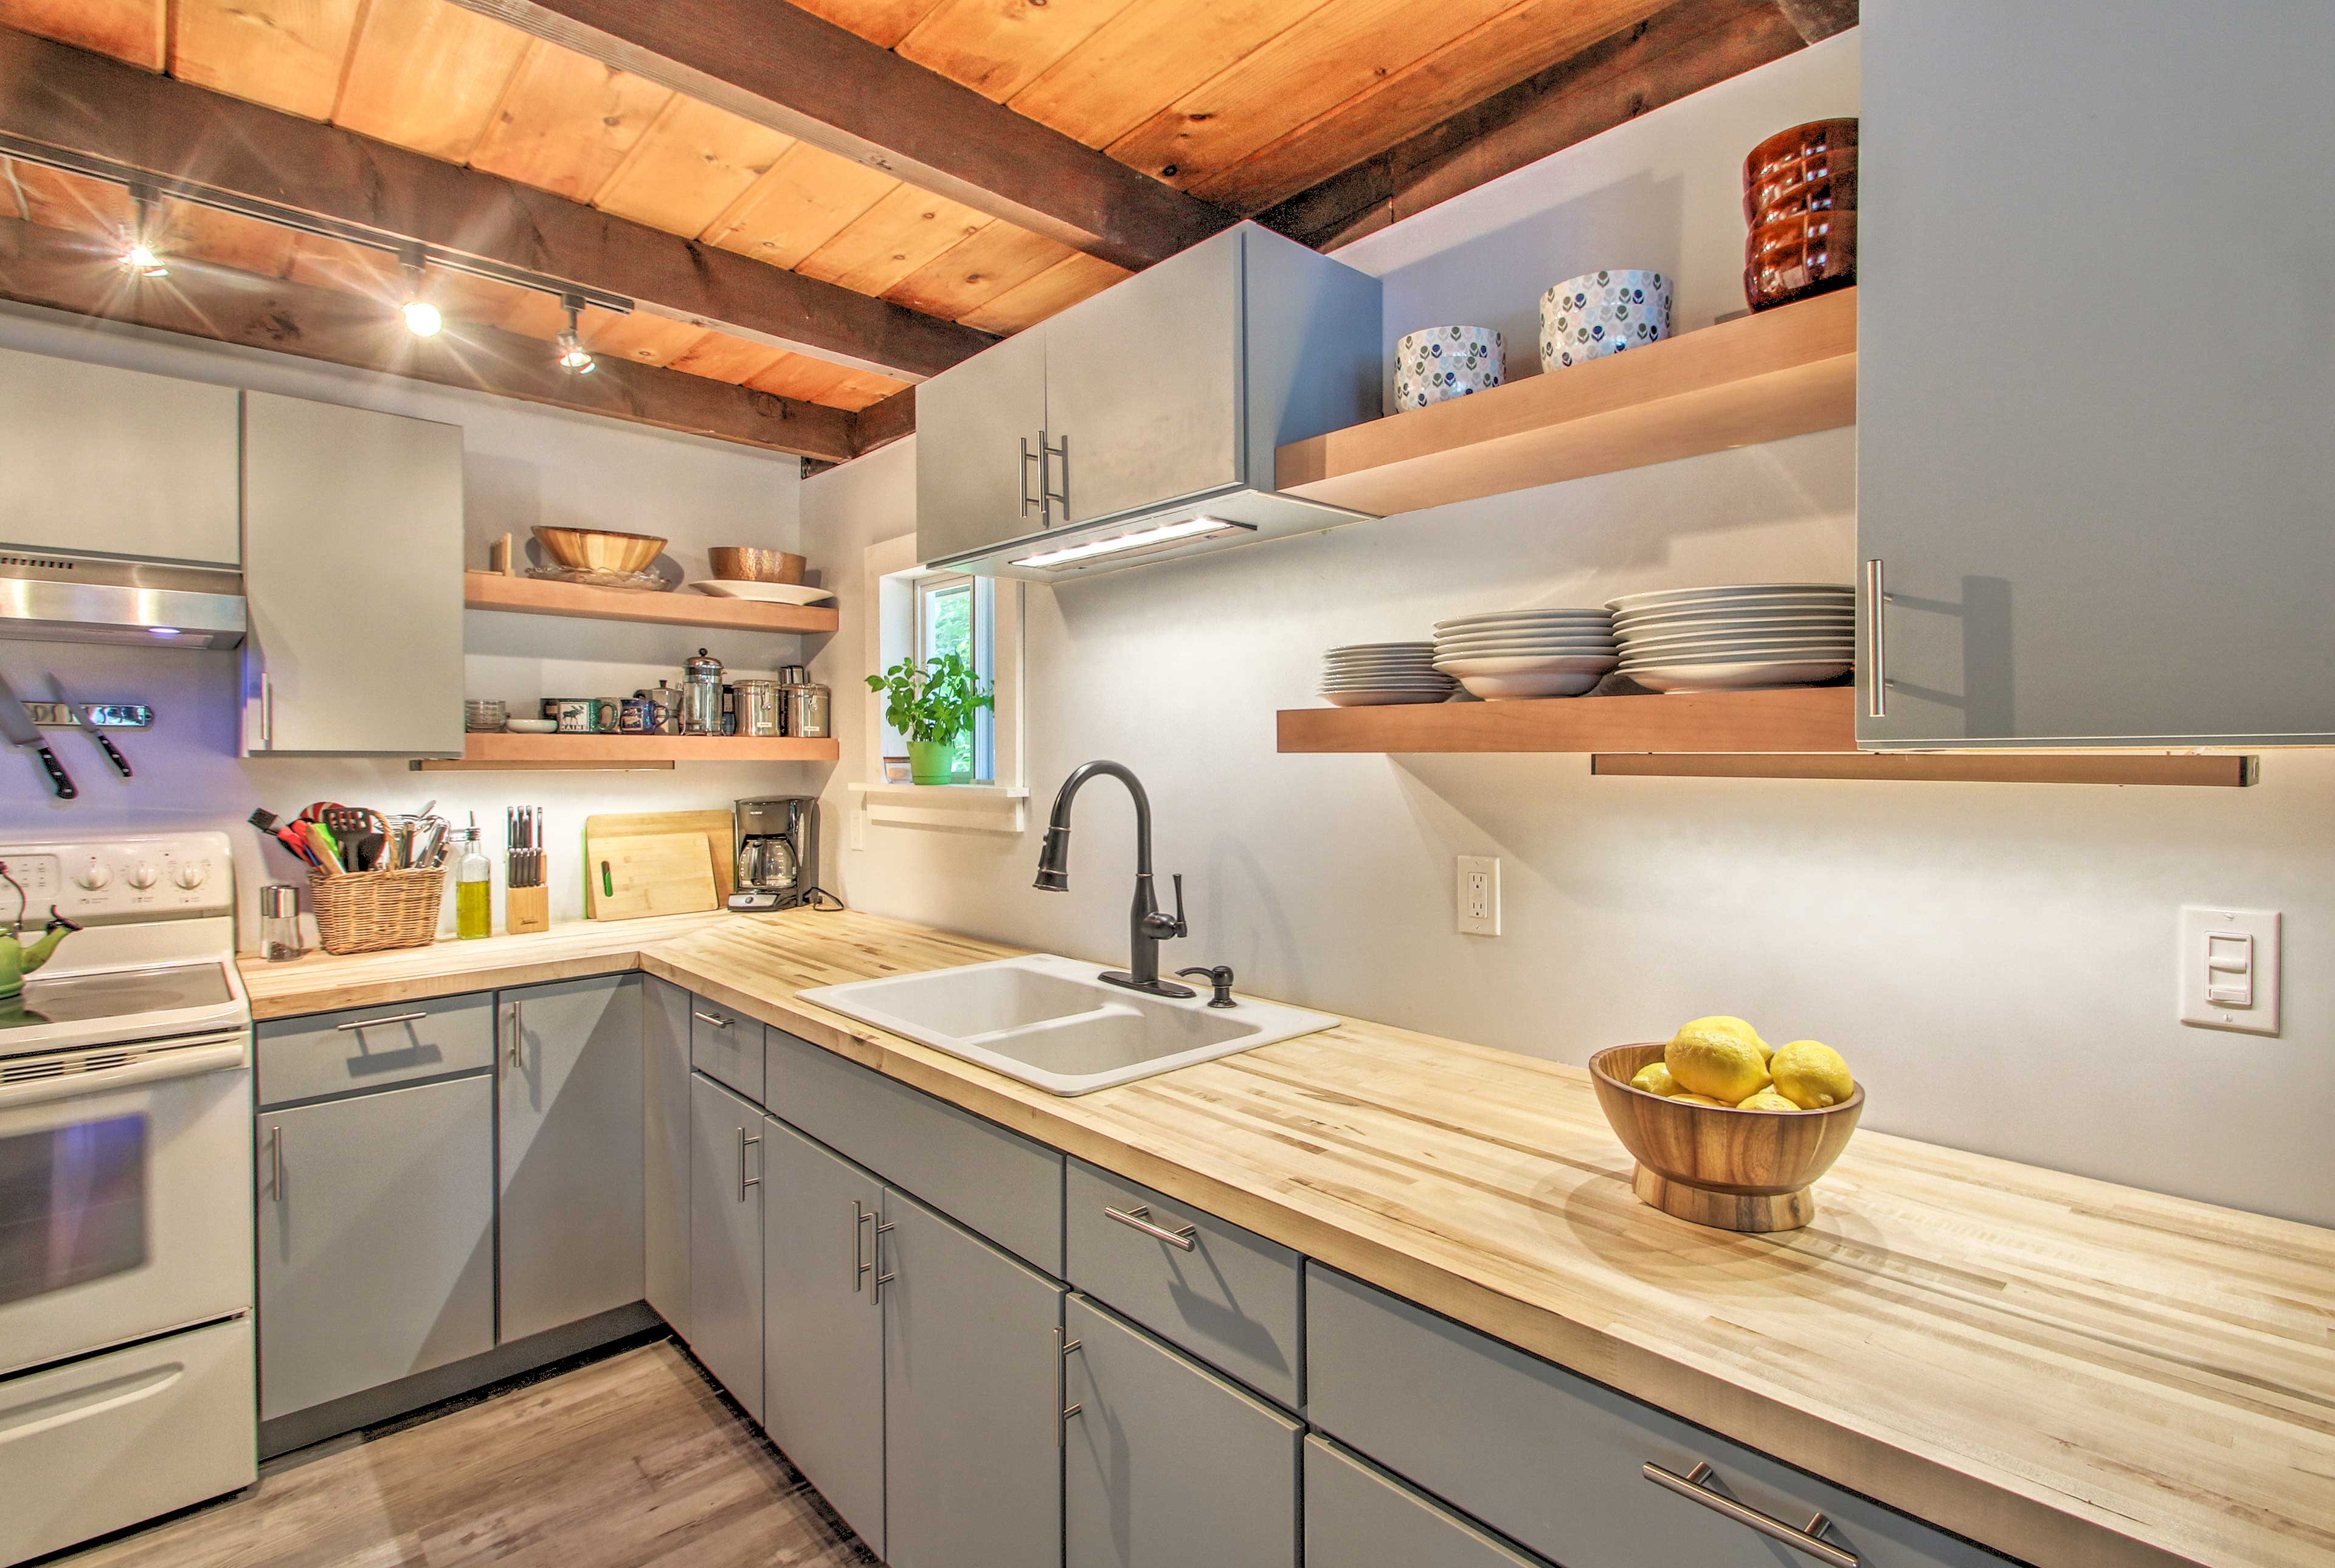 Make memories in the well-equipped kitchen as homemade meals are prepared.